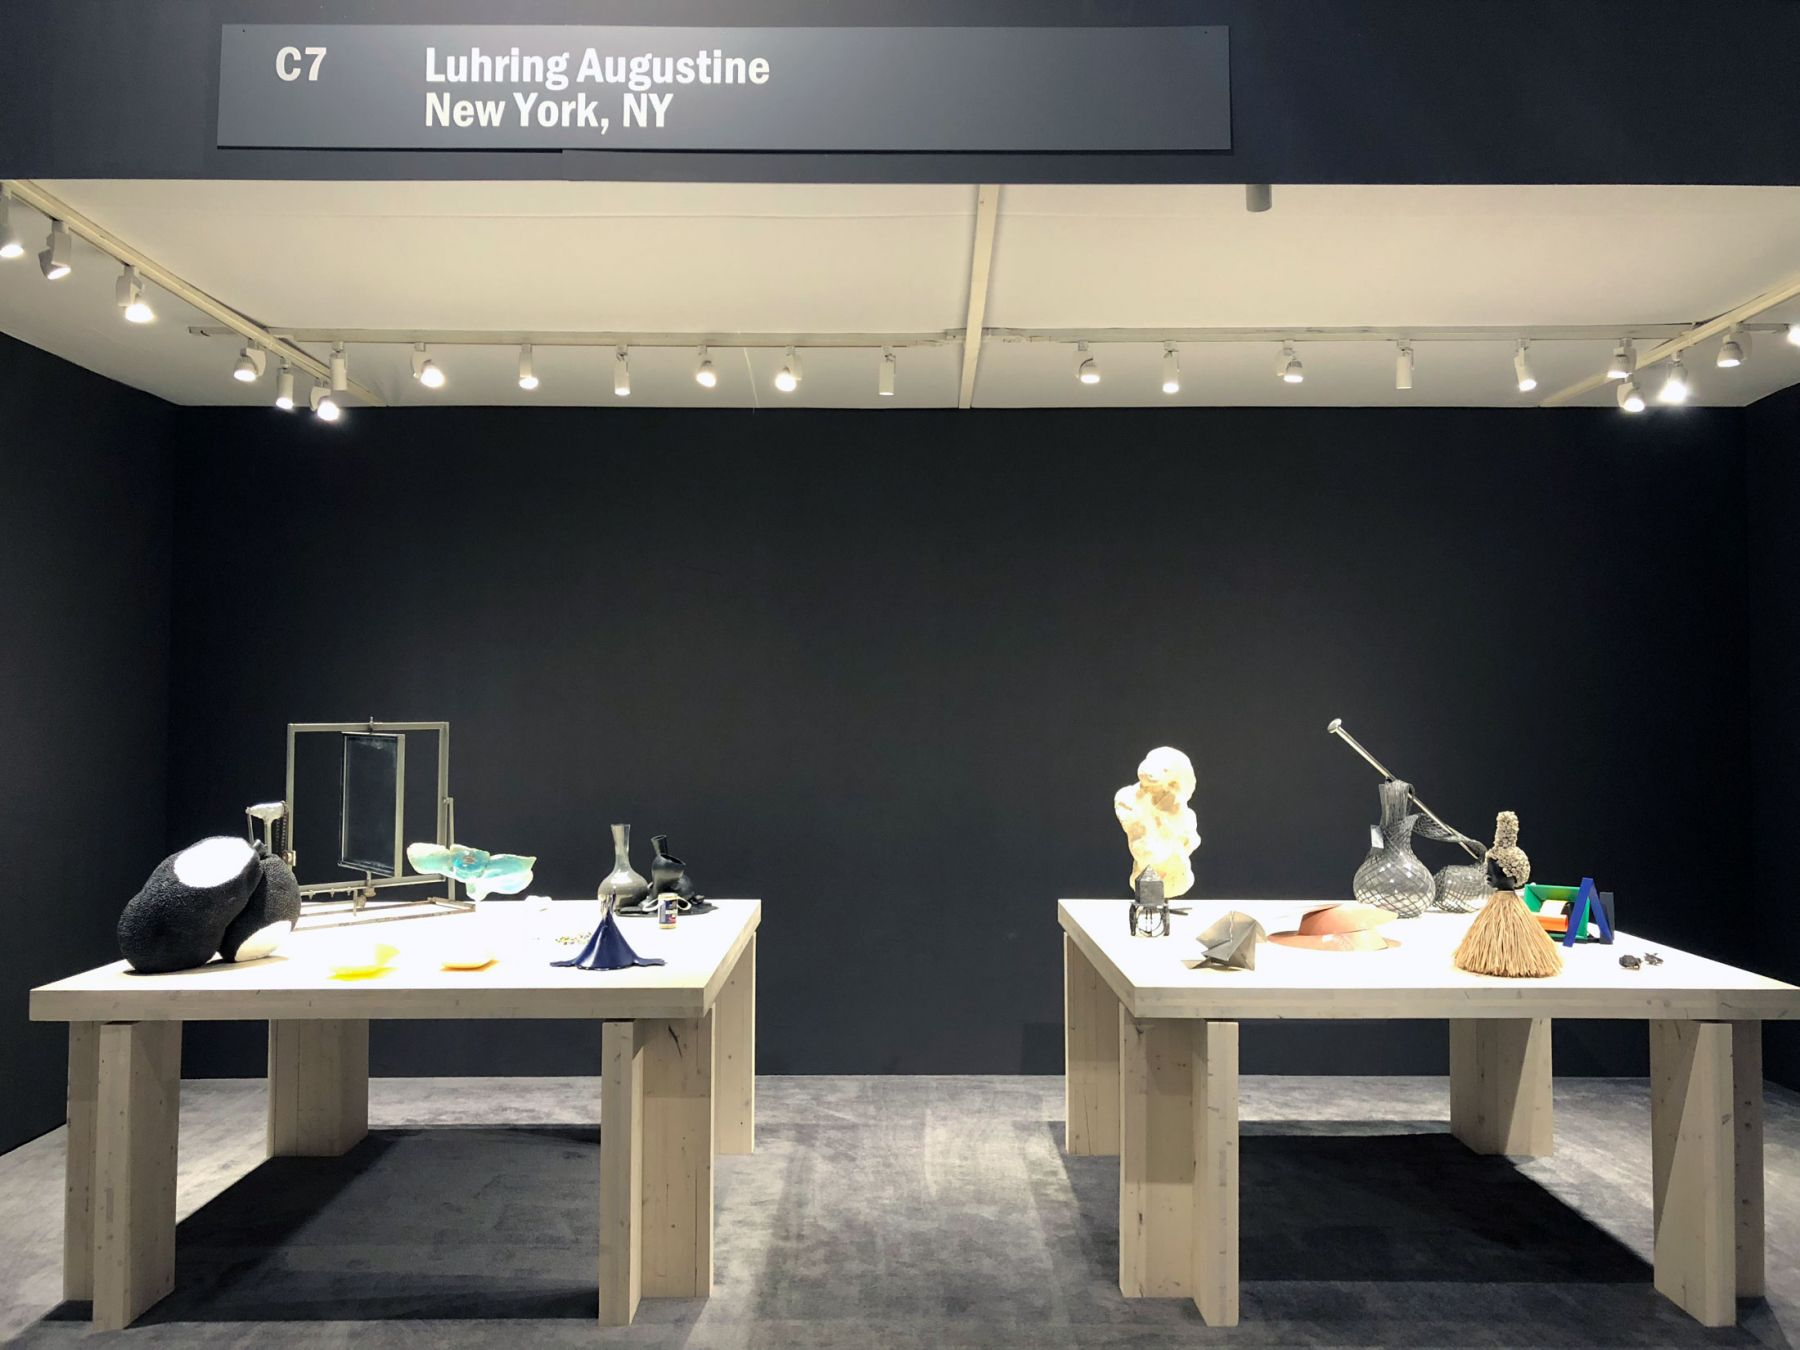 Luhring Augustine, ADAA, TheArt Show, Booth C7